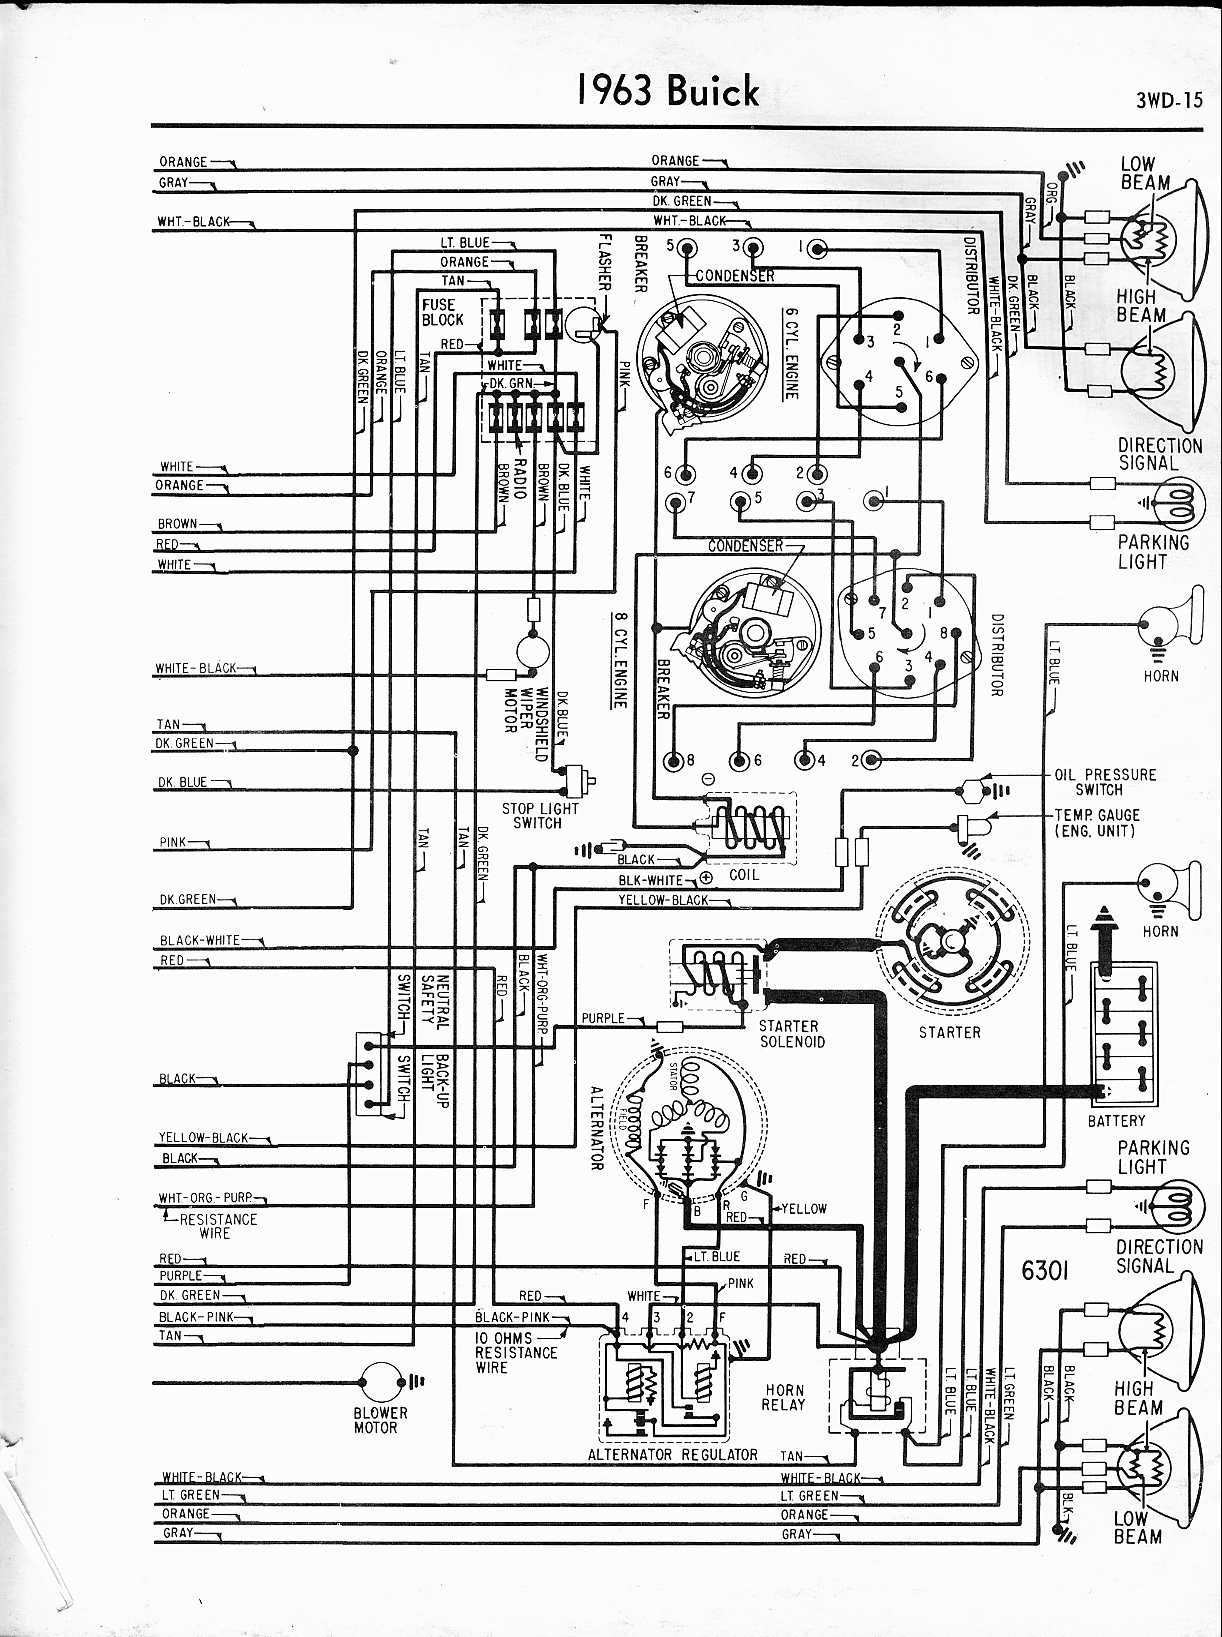 Buick Wiring Diagrams 1957 1965 79 Ford Alternator Diagram Free Picture 1963 Special Skylark Right Half